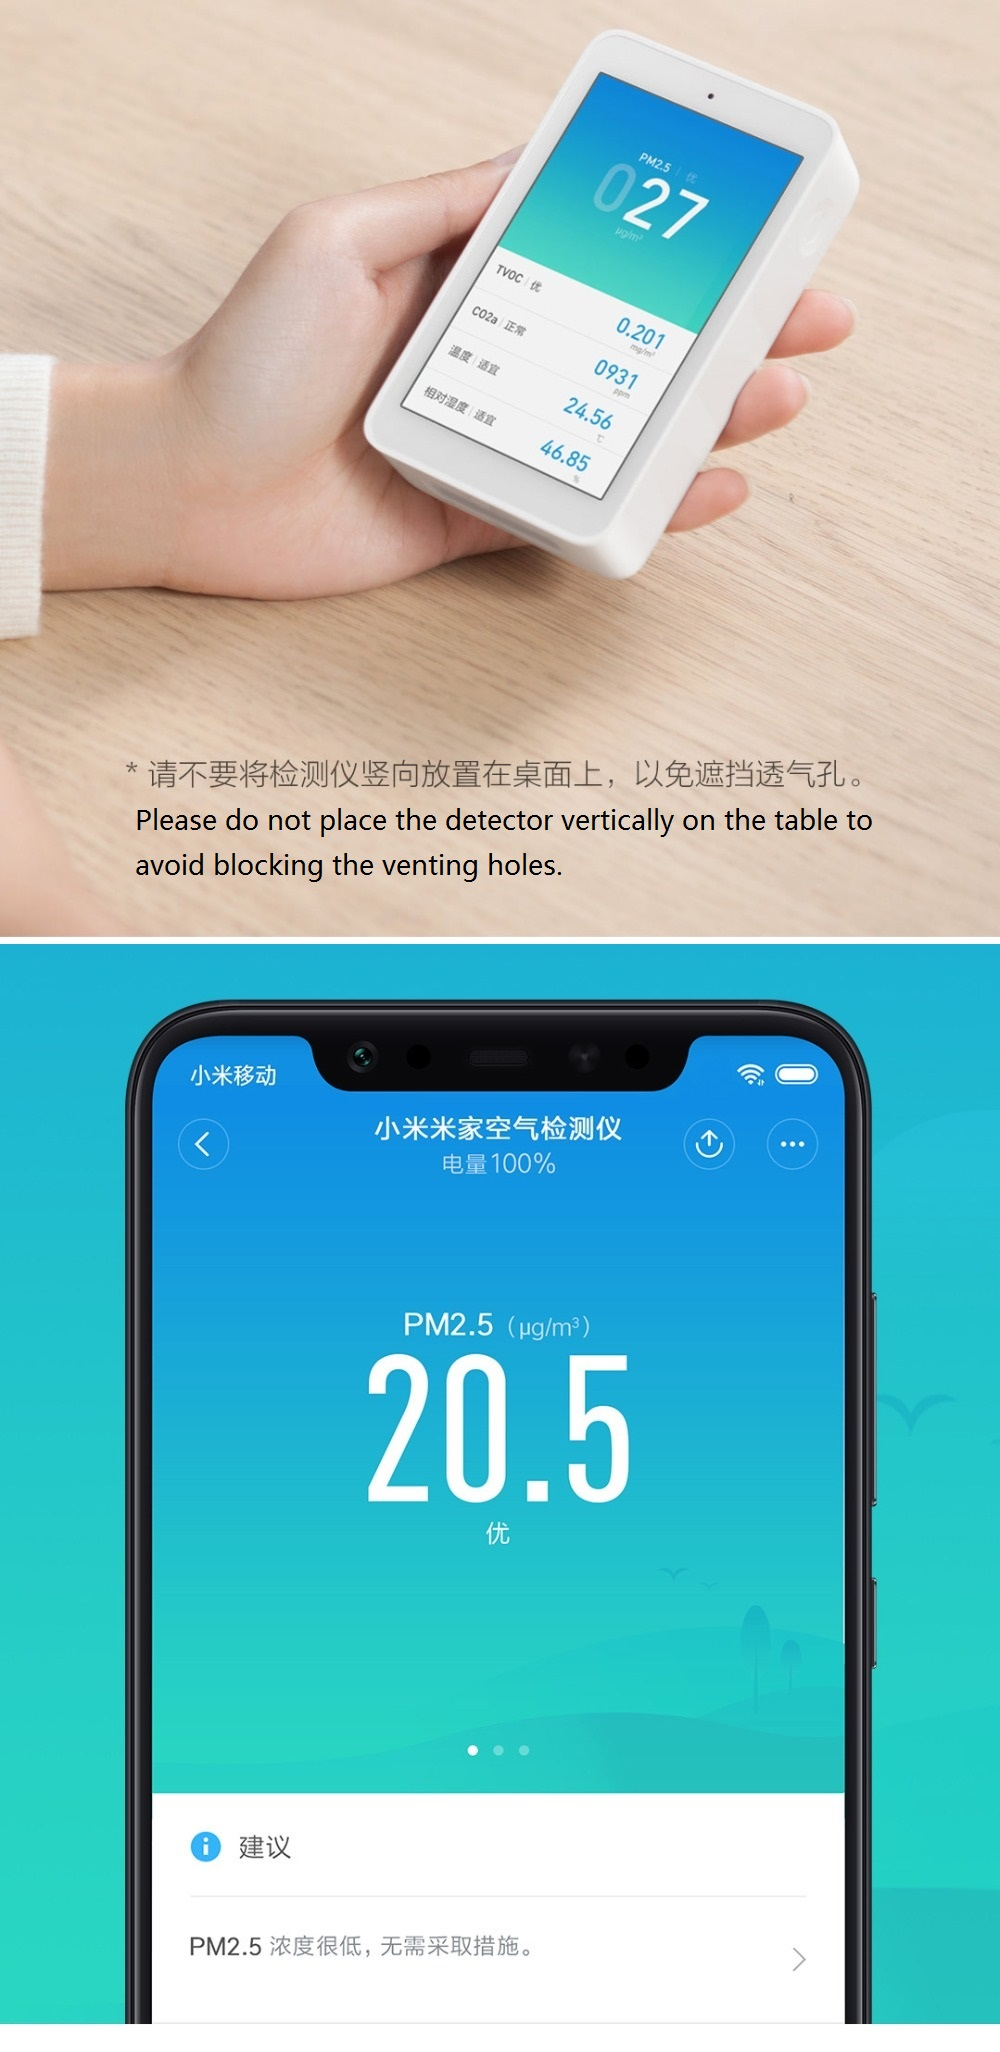 Xiaomi Mijia Air Quality Tester High-precision Sensing 3.97-inch Screen Resolution 800*480 USB Interface Remote Monitoring TVOC CO2 PM2.5 Temperature and Humidity Measurement